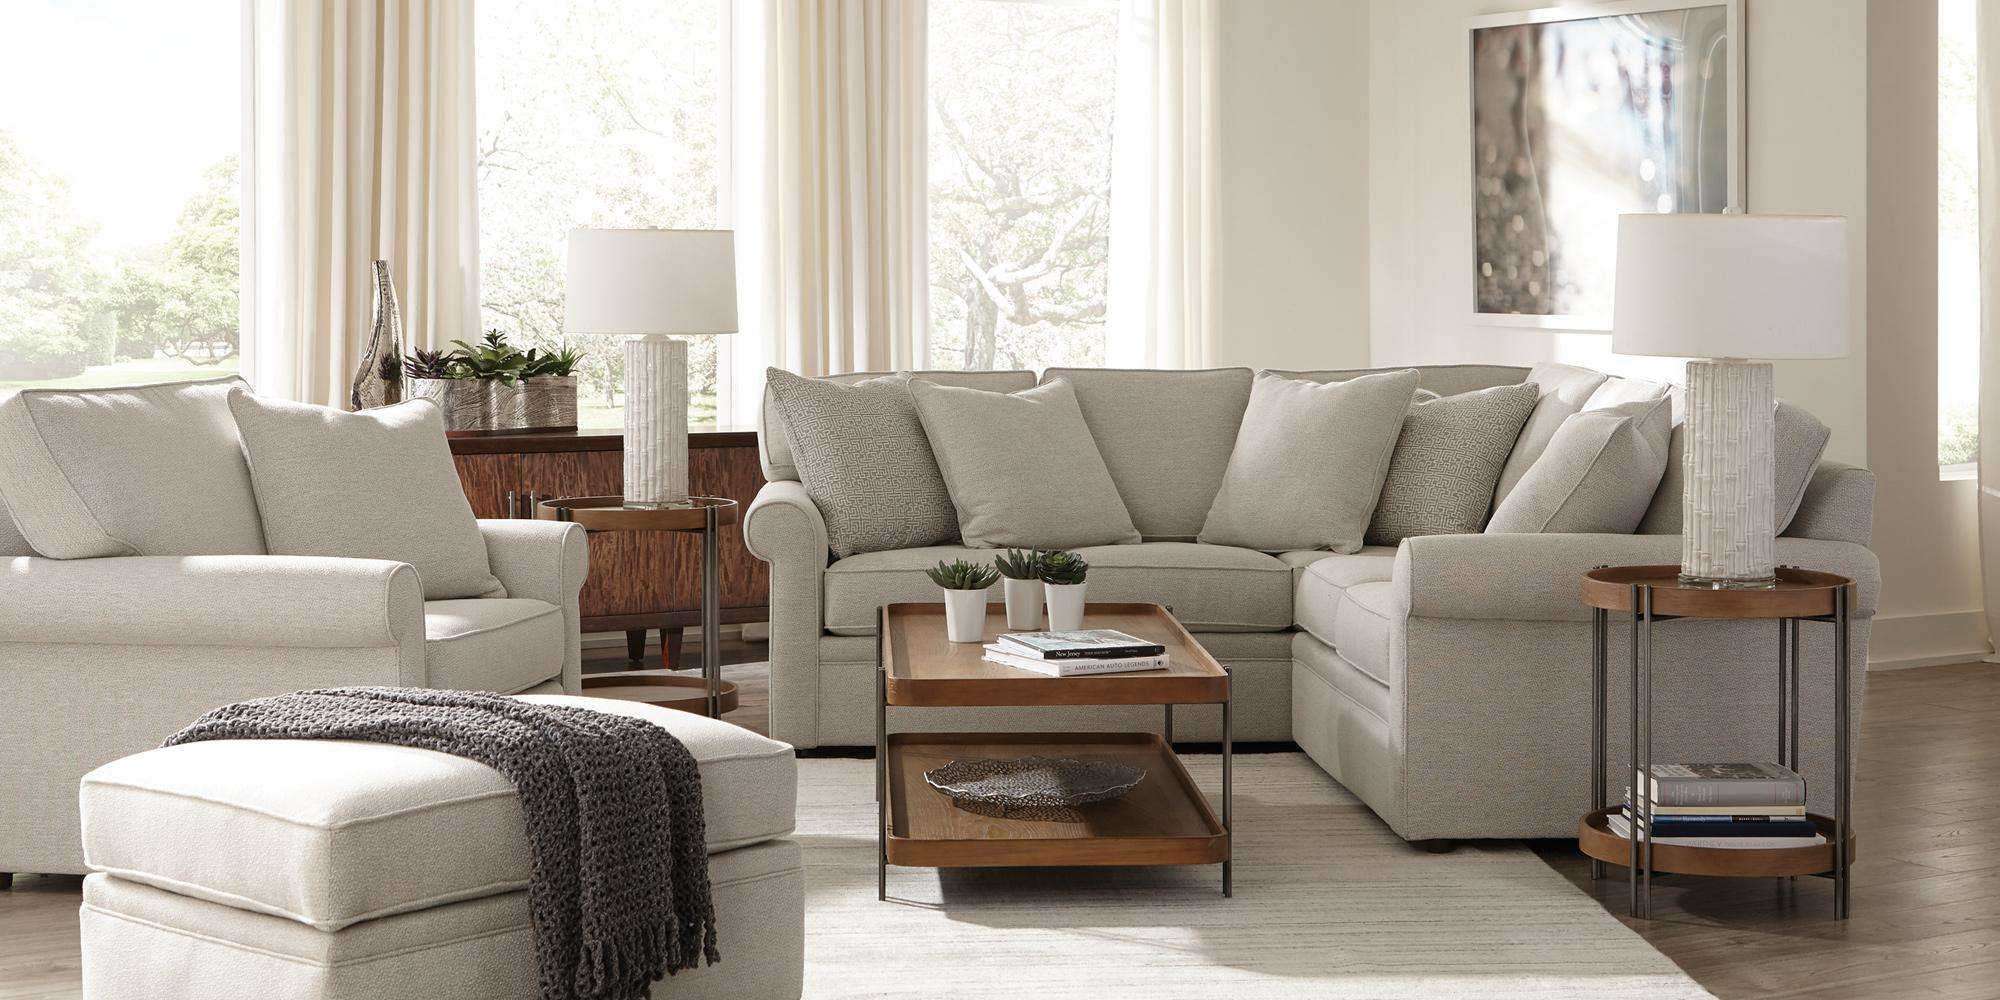 Sui Generis Home Furniture Newaygo Michigan